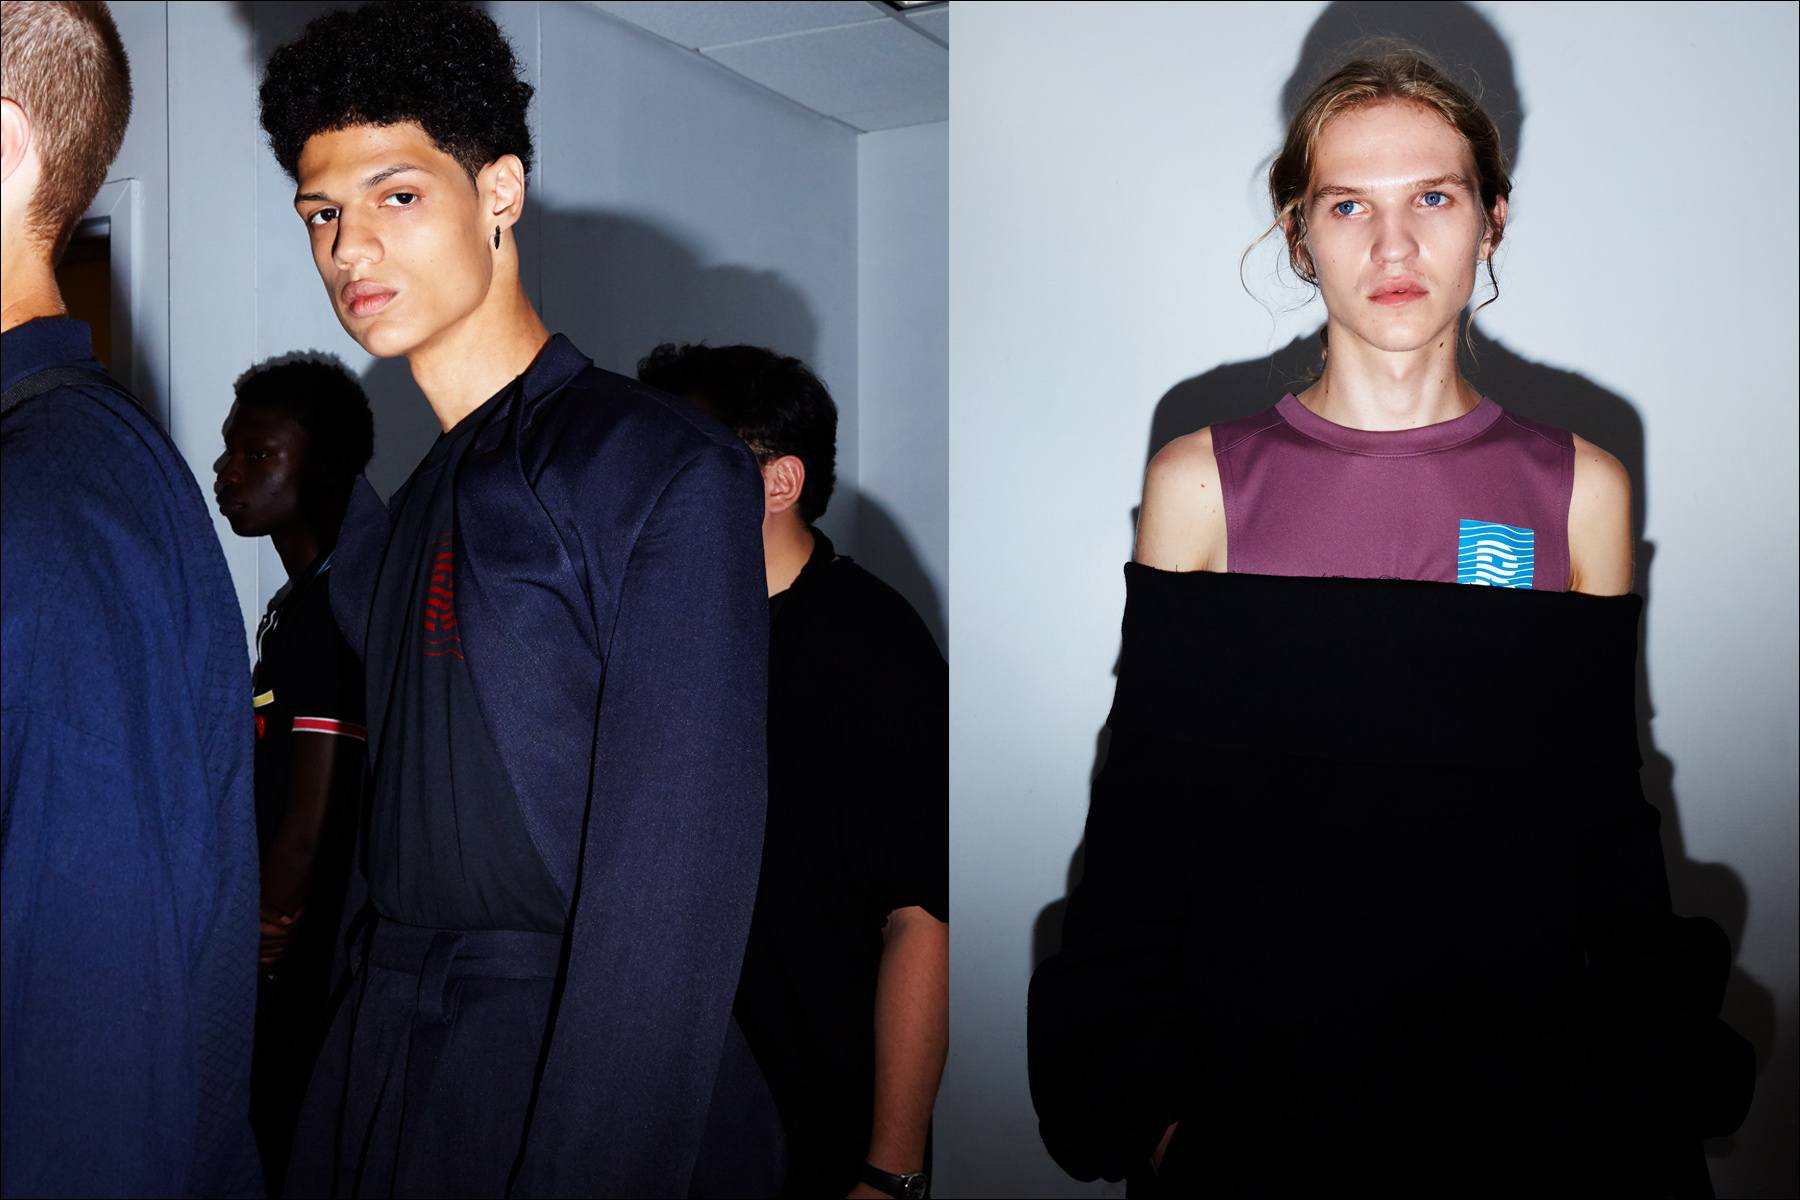 Models snapped before walking backstage at the Raun LaRose S/S18 menswear show. Photography by Alexander Thompson for Ponyboy magazine New York.